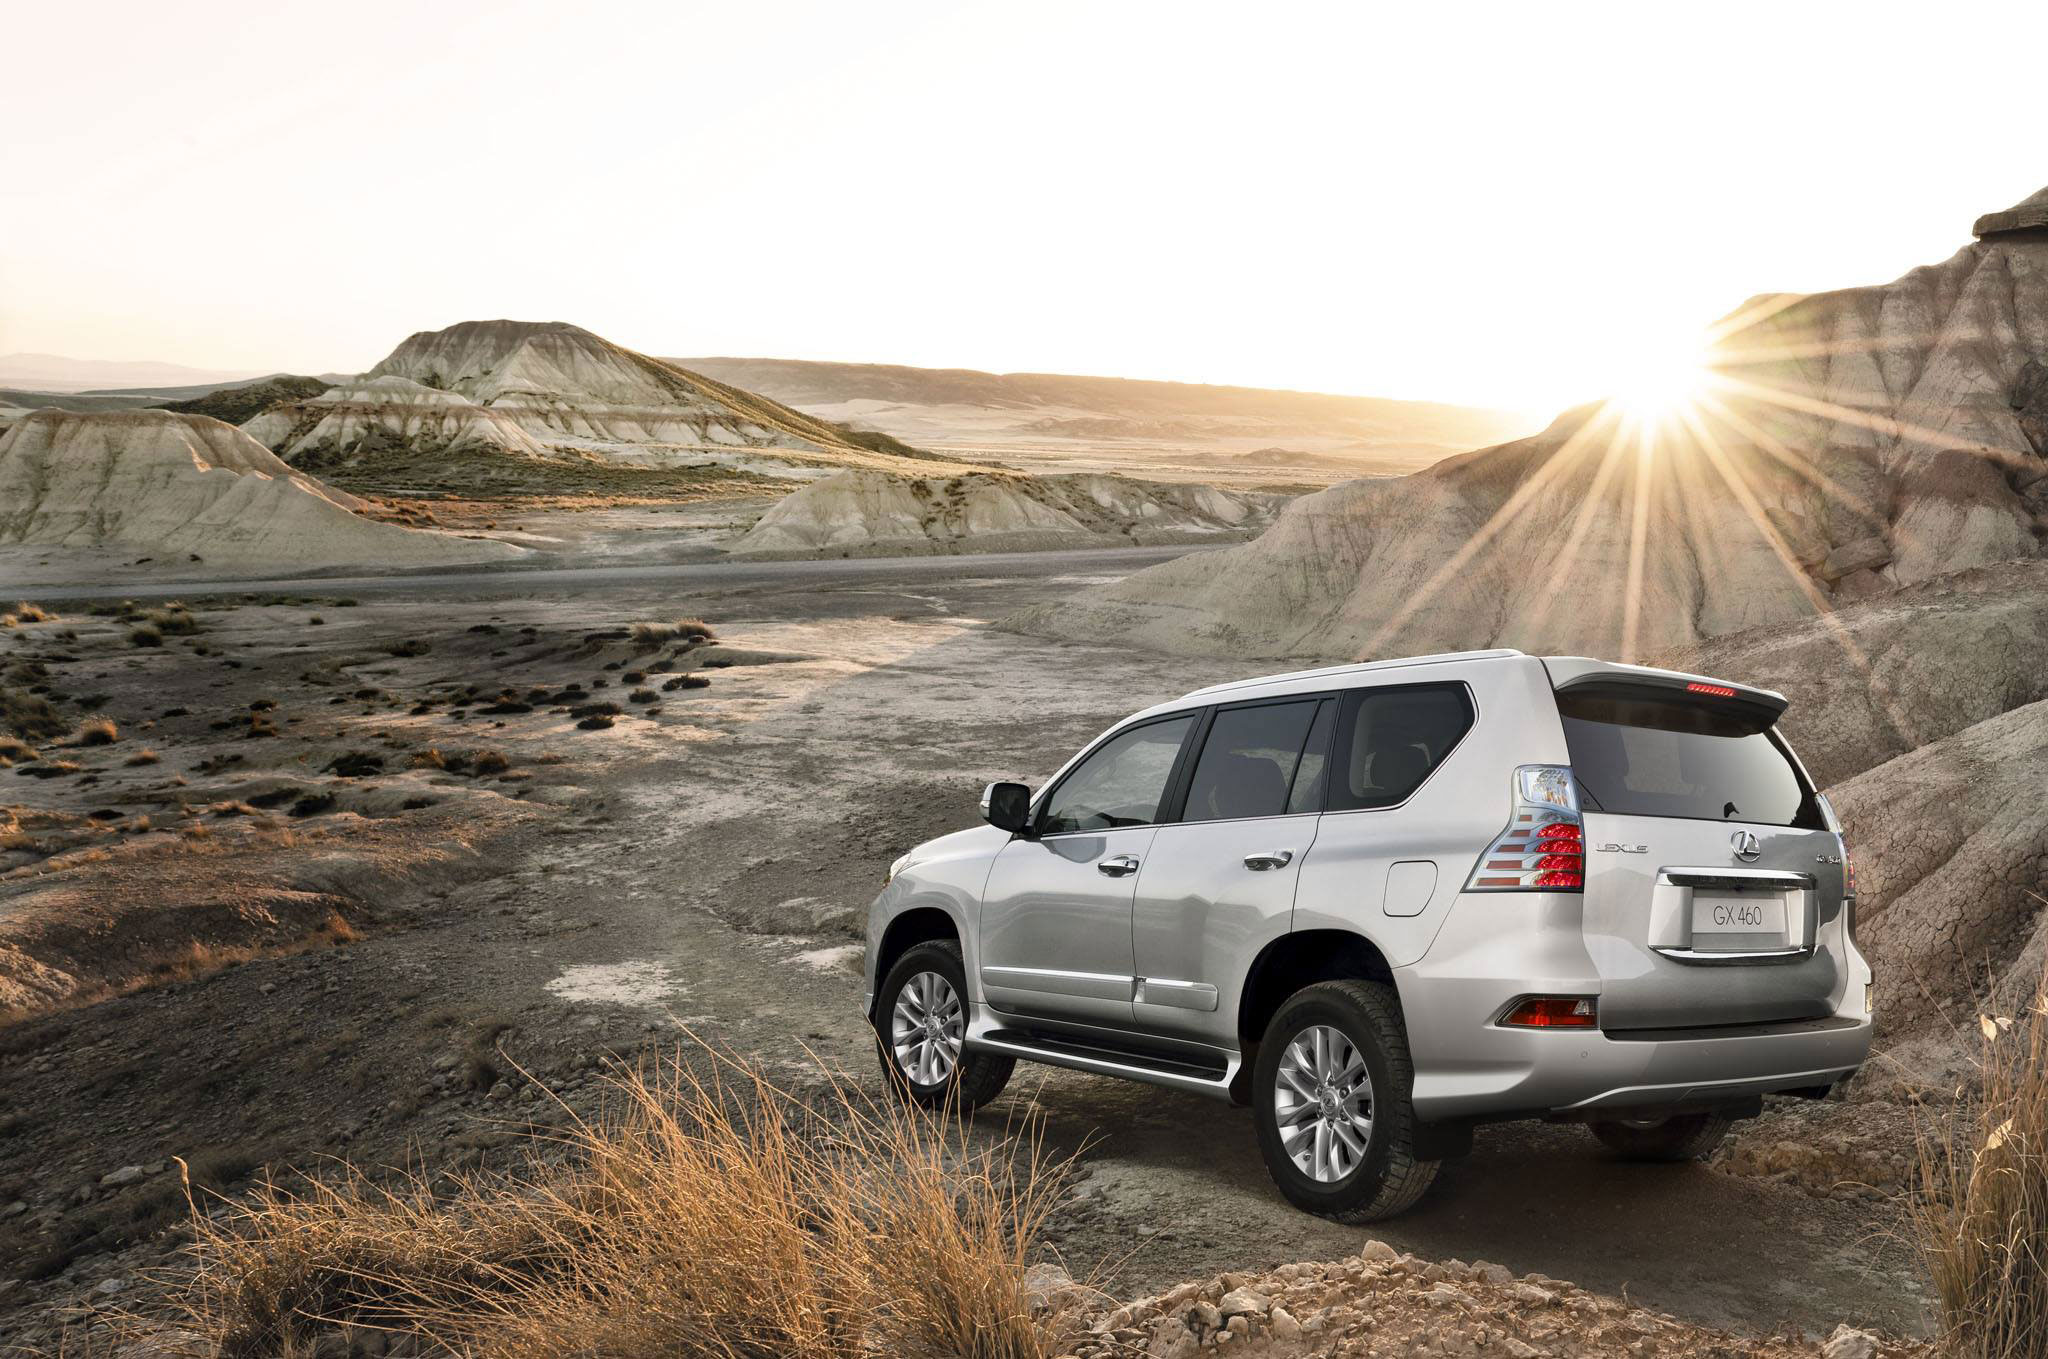 2014 Lexus GX Comes with a New Face and a $4,700 Lower Starting Price